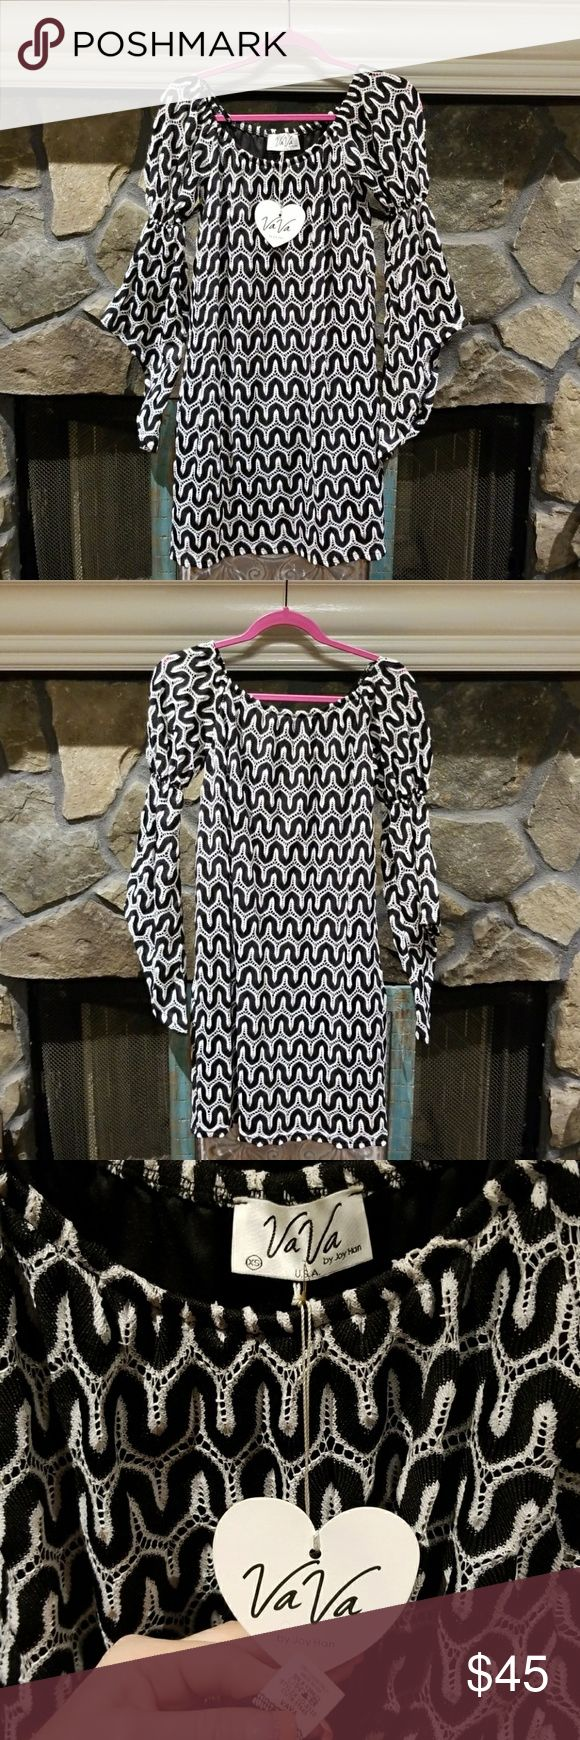 VaVa by Joy Han Boho Crochet Dress XS VaVa by Joy Han Boho Crochet Dress, size XS. This fun patterned black & white dress is great for a night out or even a formal summer wedding! New condition w/tags. Purchased at a boutique & has been hanging in my closet ever since waiting for the perfect night to dance the night away but it just didn't happen, SAD....so now it's up to you to give it life!?? Vava by Joy Han Dresses Mini